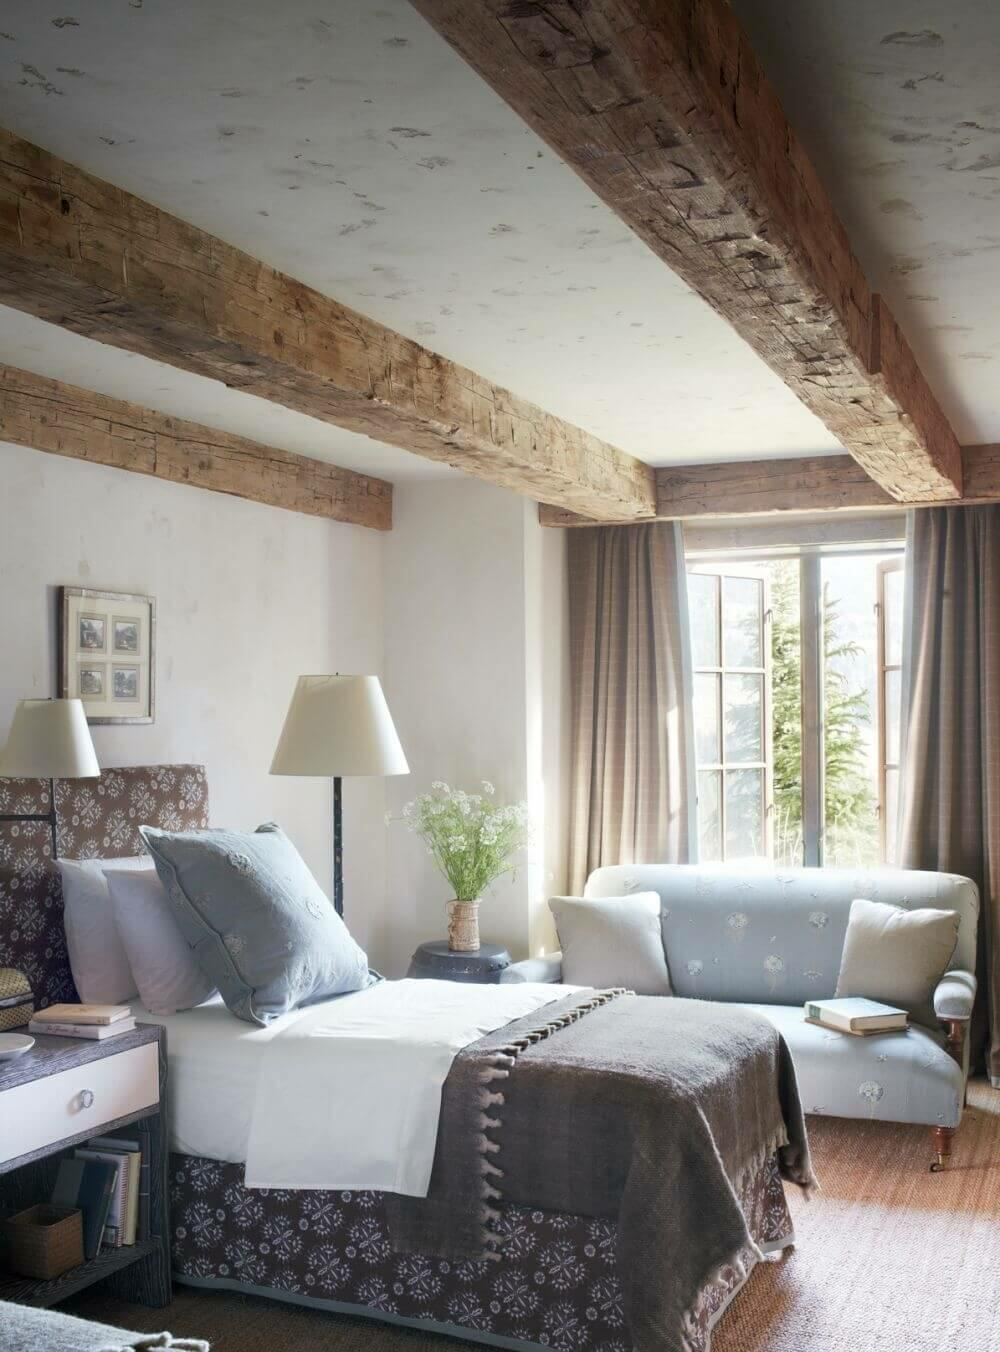 13 Rustic Design Ideas to Make Your Bedroom More Natural and Cozy